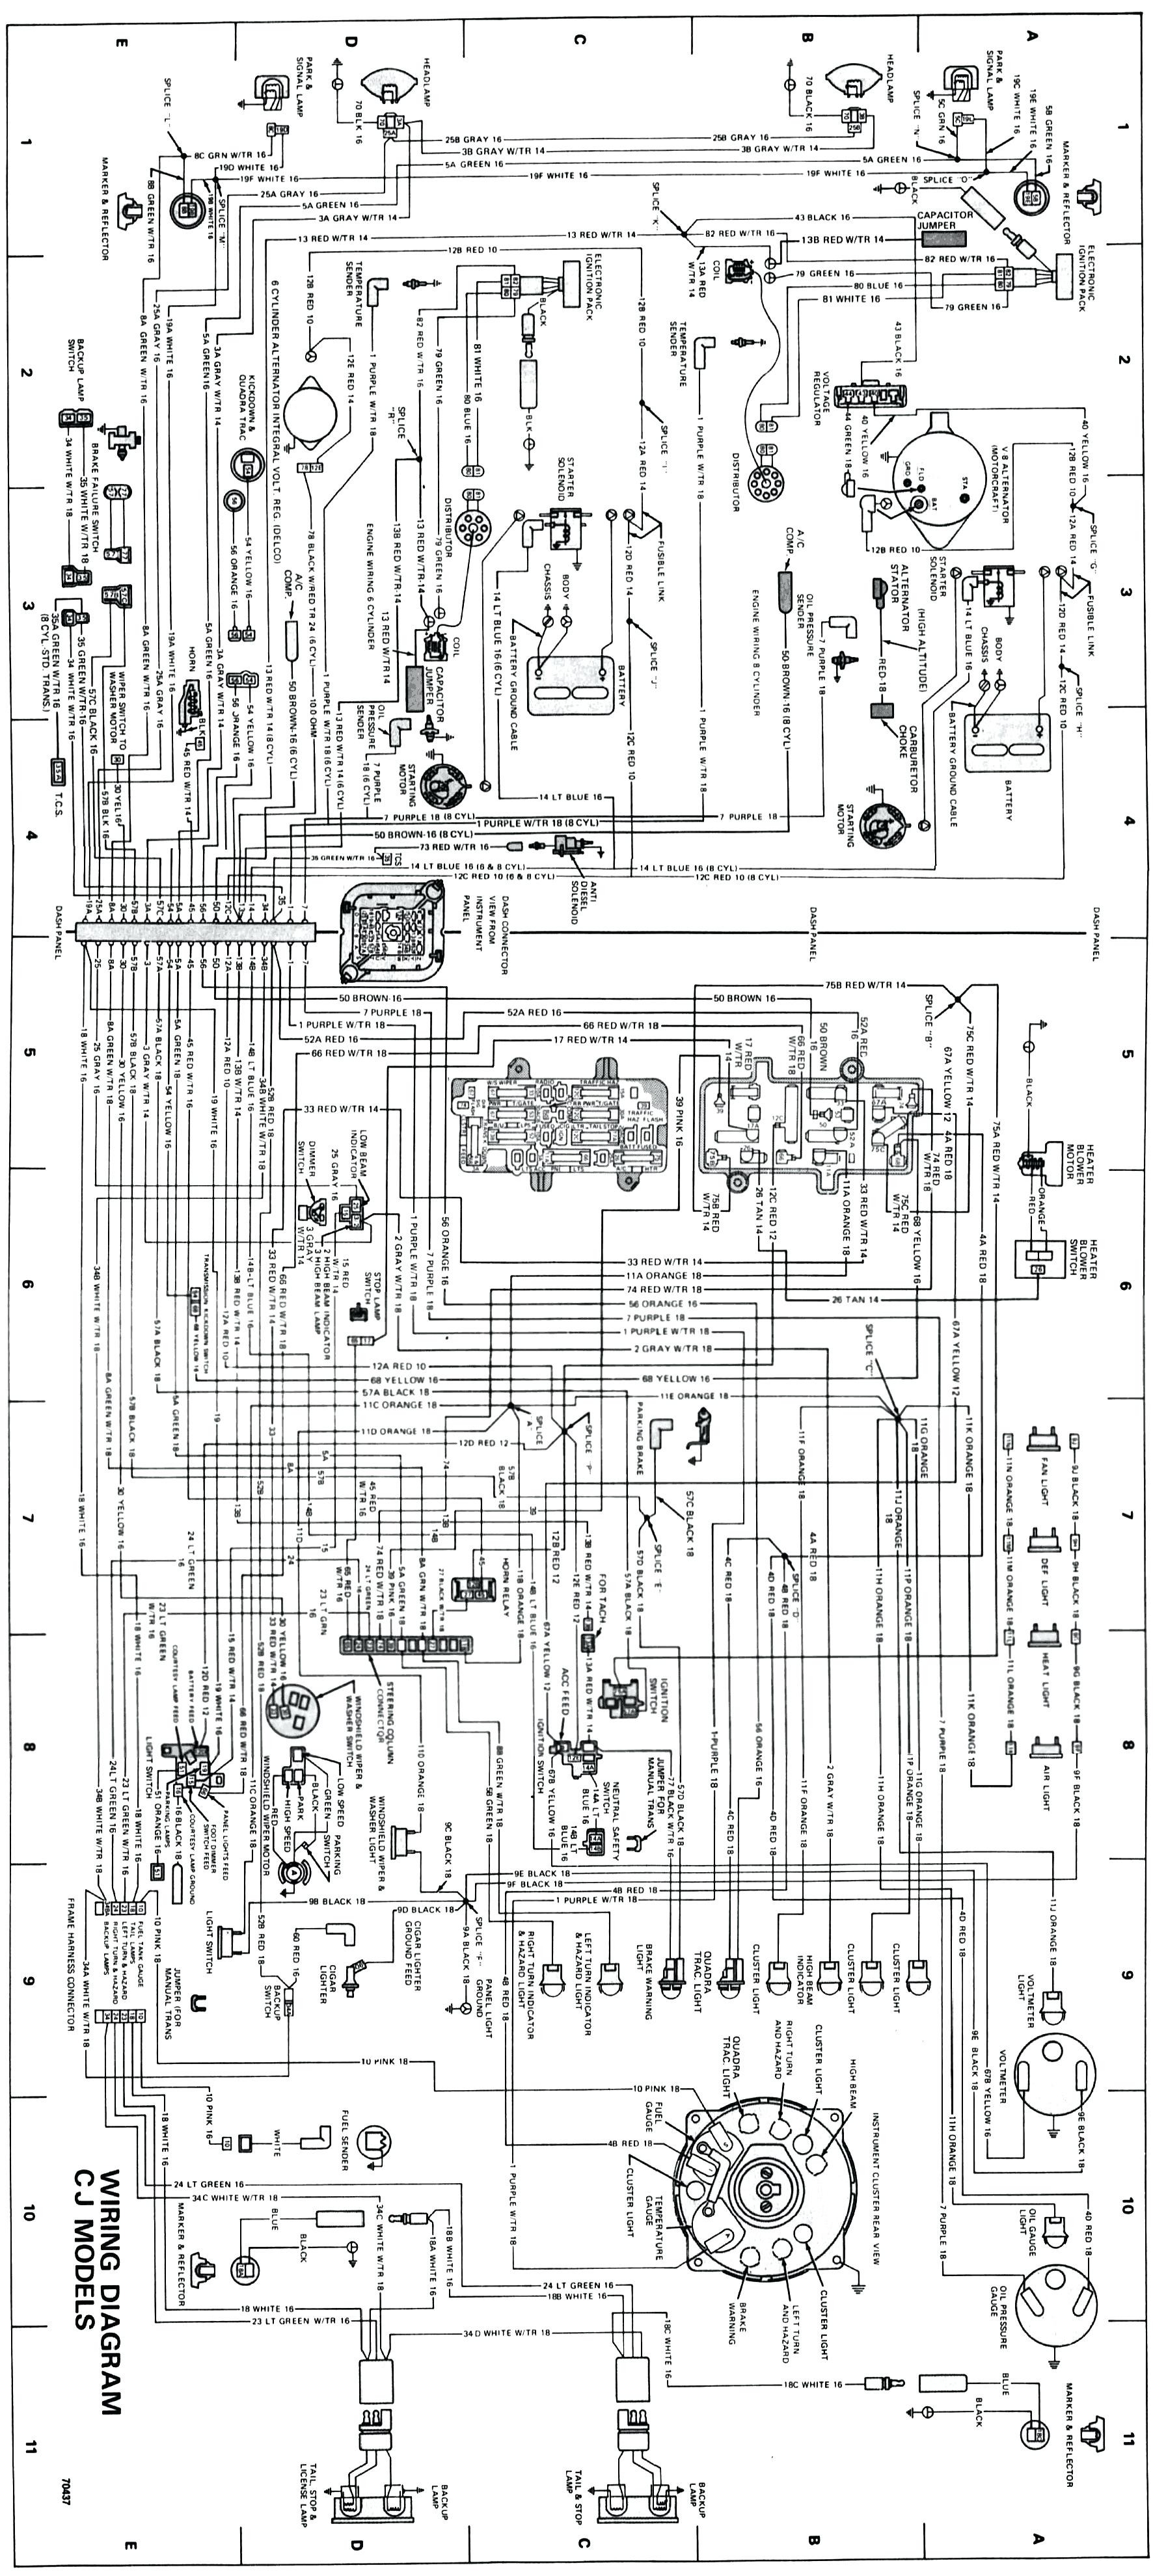 jeep cj7 ignition switch wiring diagram wiring diagram used cj7 jeeps sale 1980 cj7 electrical diagram #3